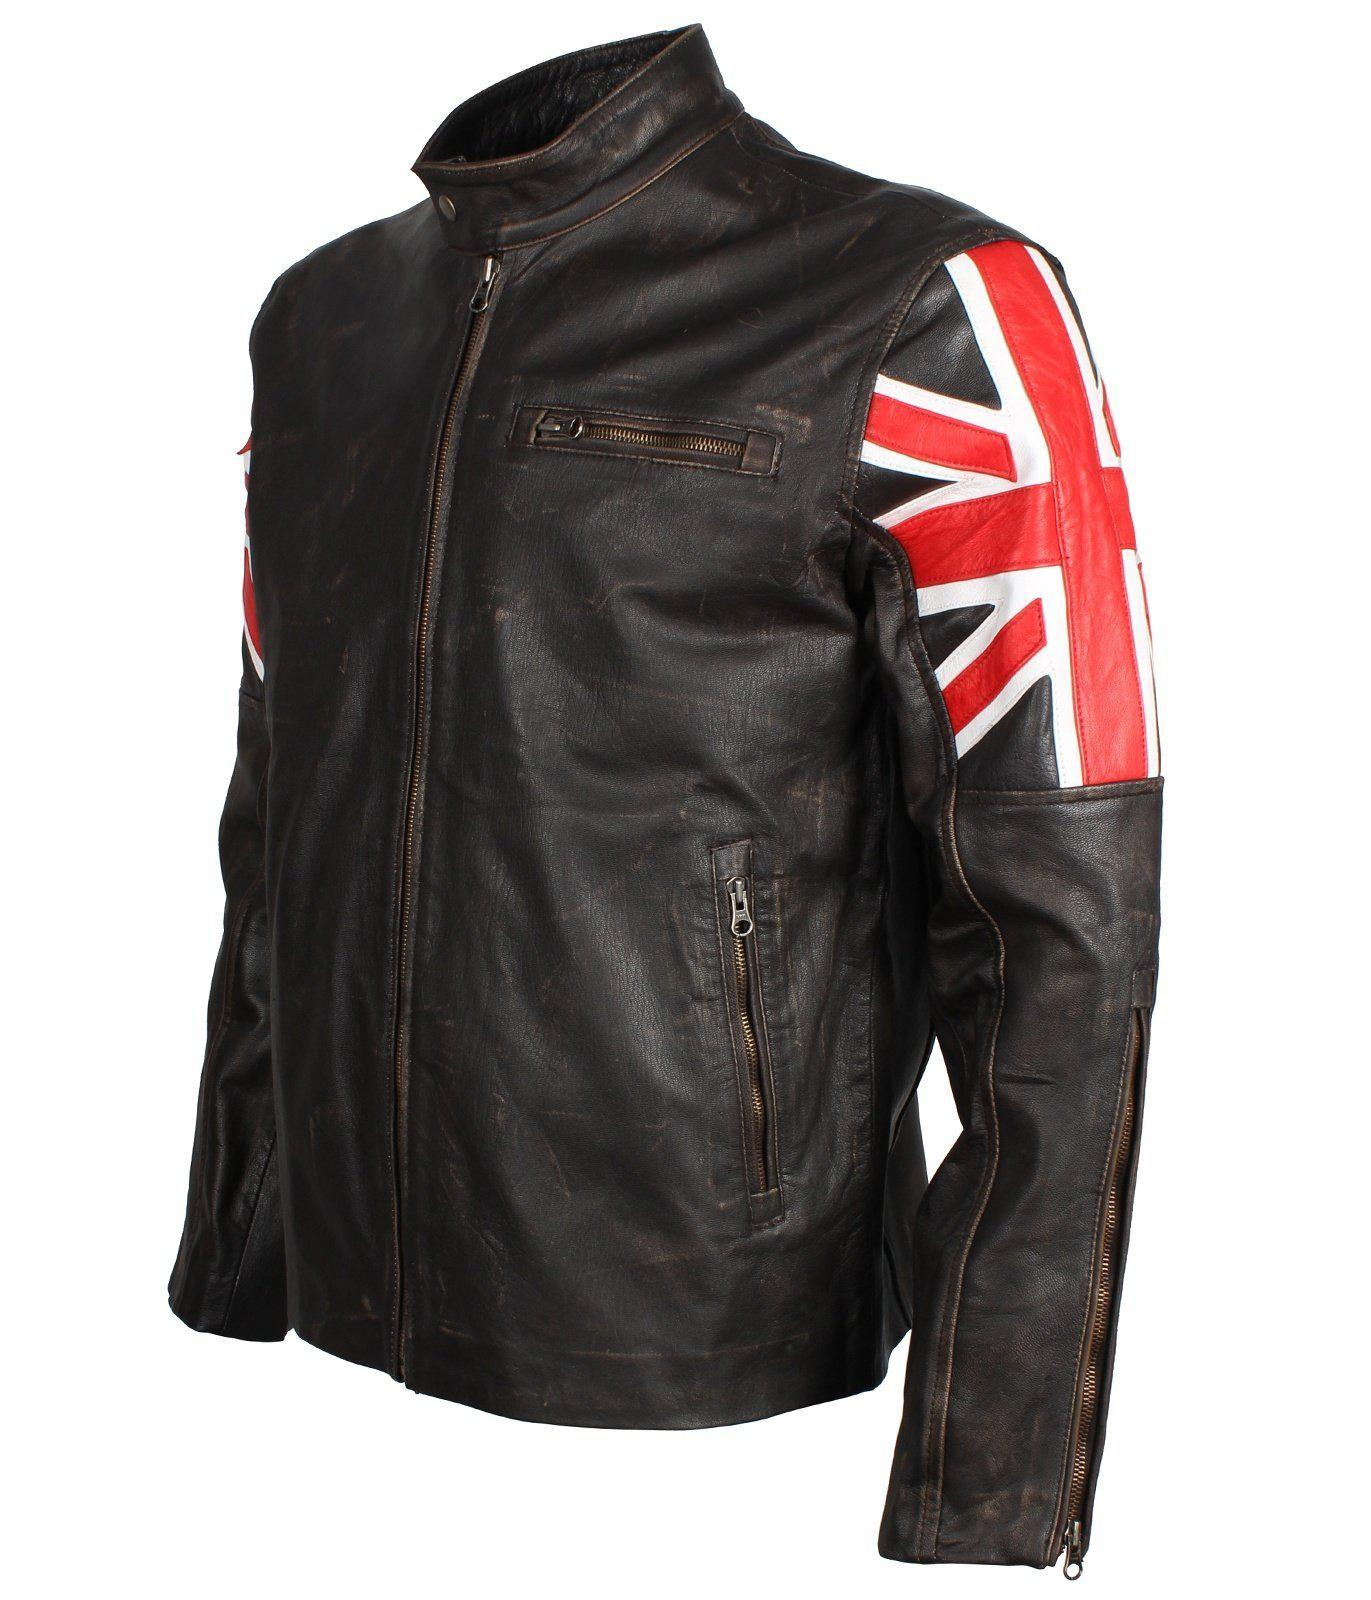 Men's Union Jack Jacket in Distressed Leather